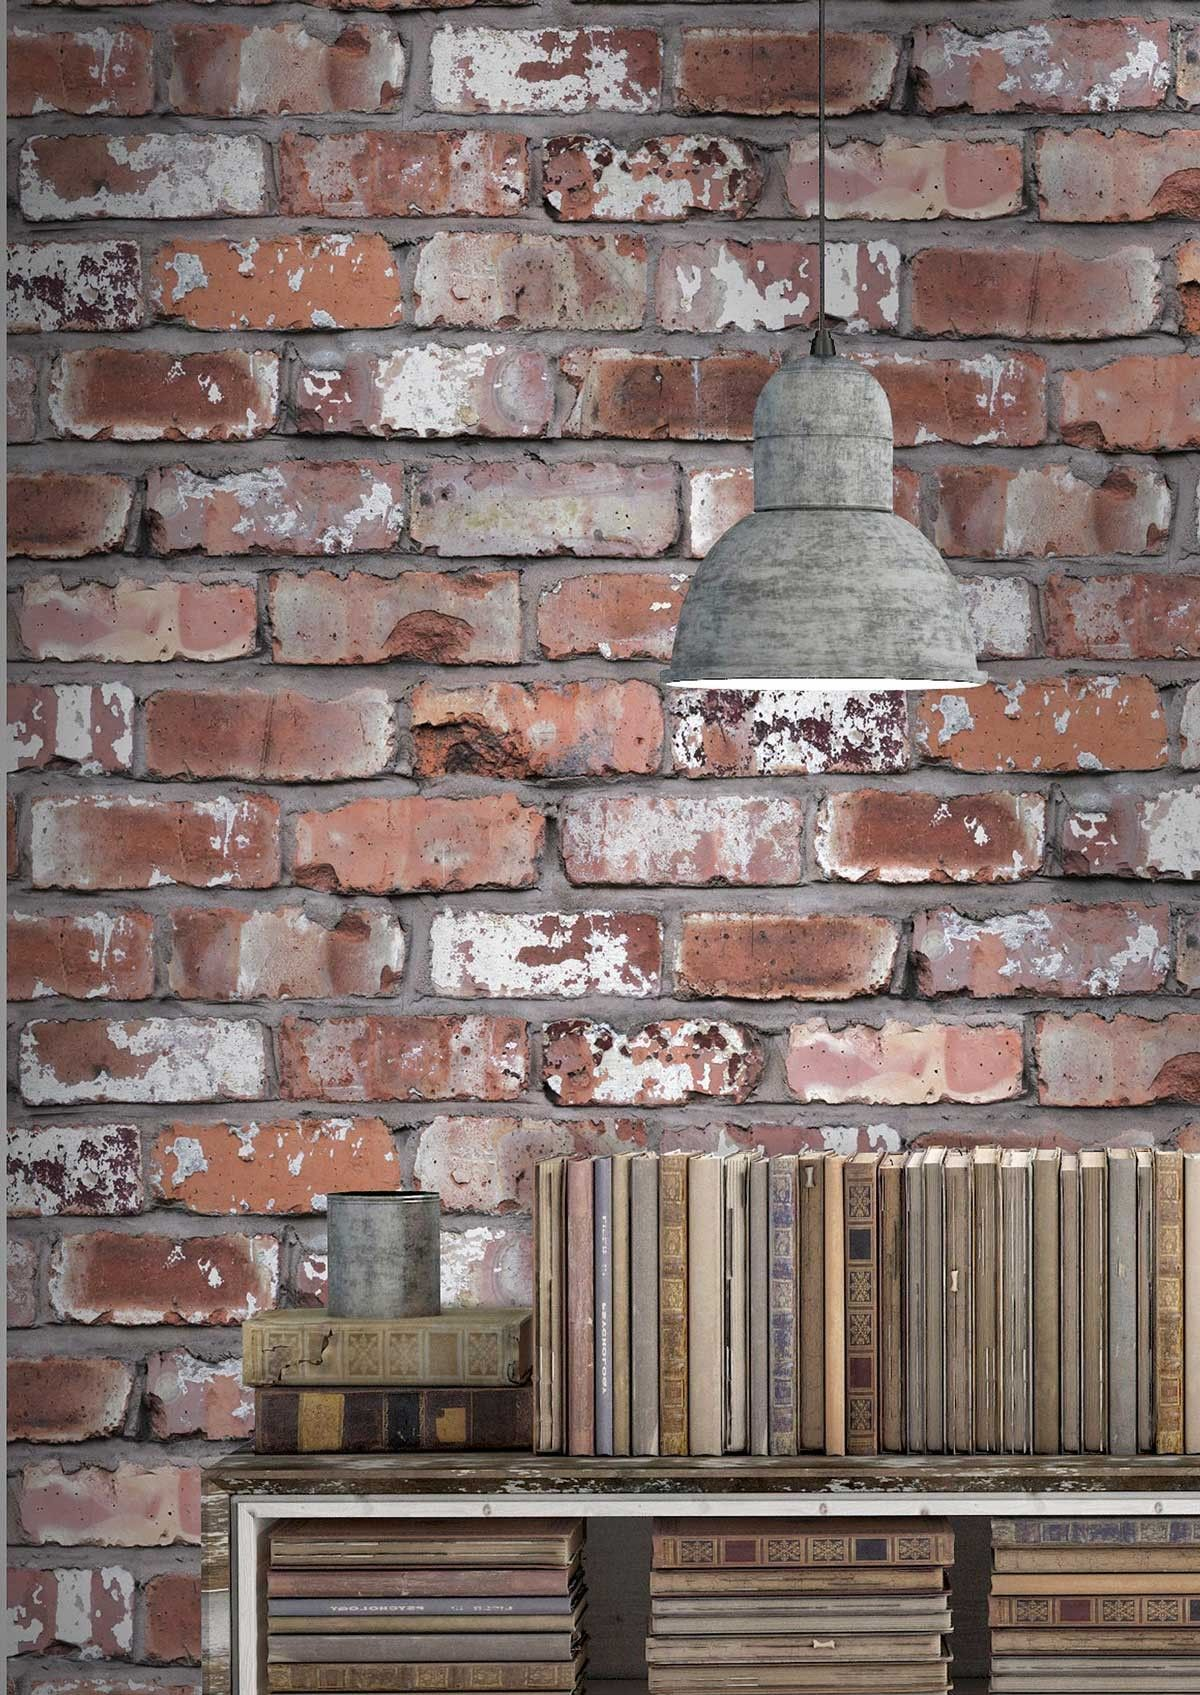 Get The Exposed Brick Look With Our Fantastic Real Effect Wallpaper Designed By Woodchip Magnolia This Stylish Wallcovering Will Bring A Unique